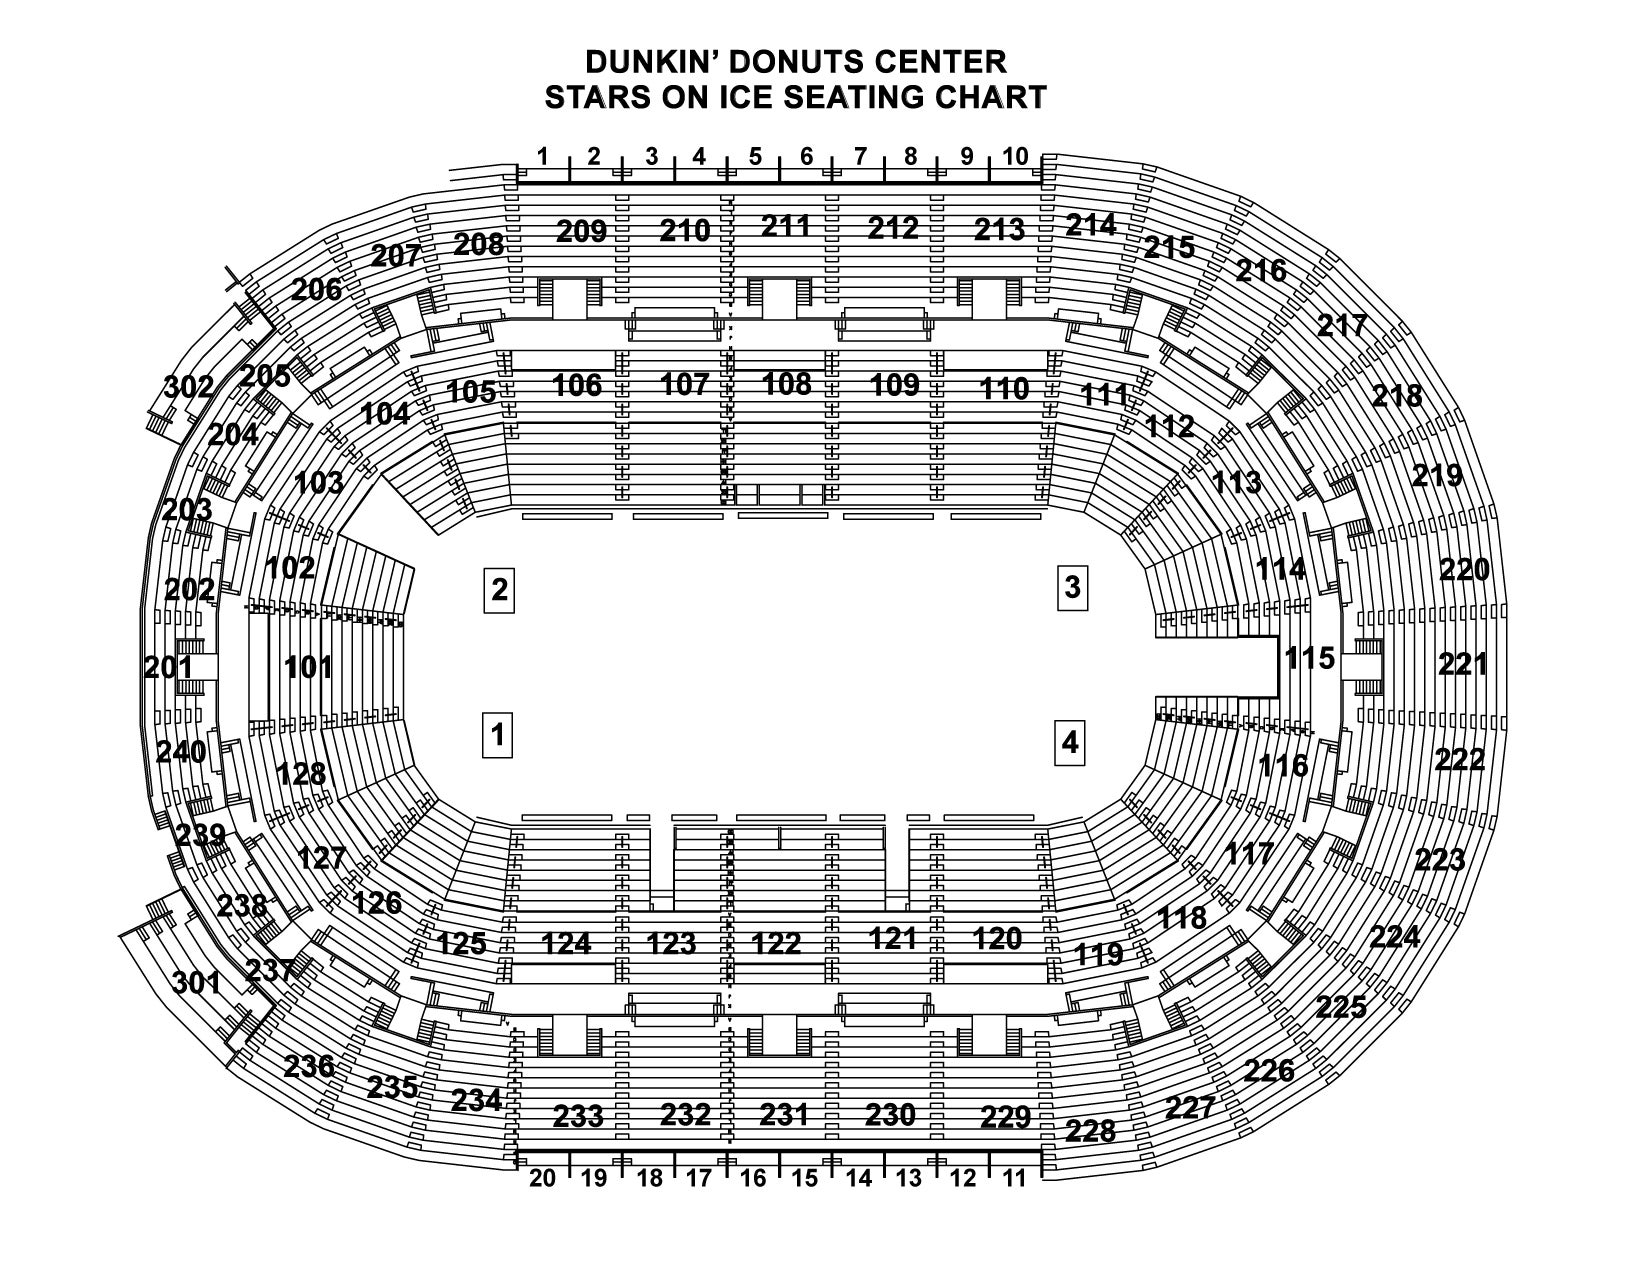 Stars On Ice Seating Chart